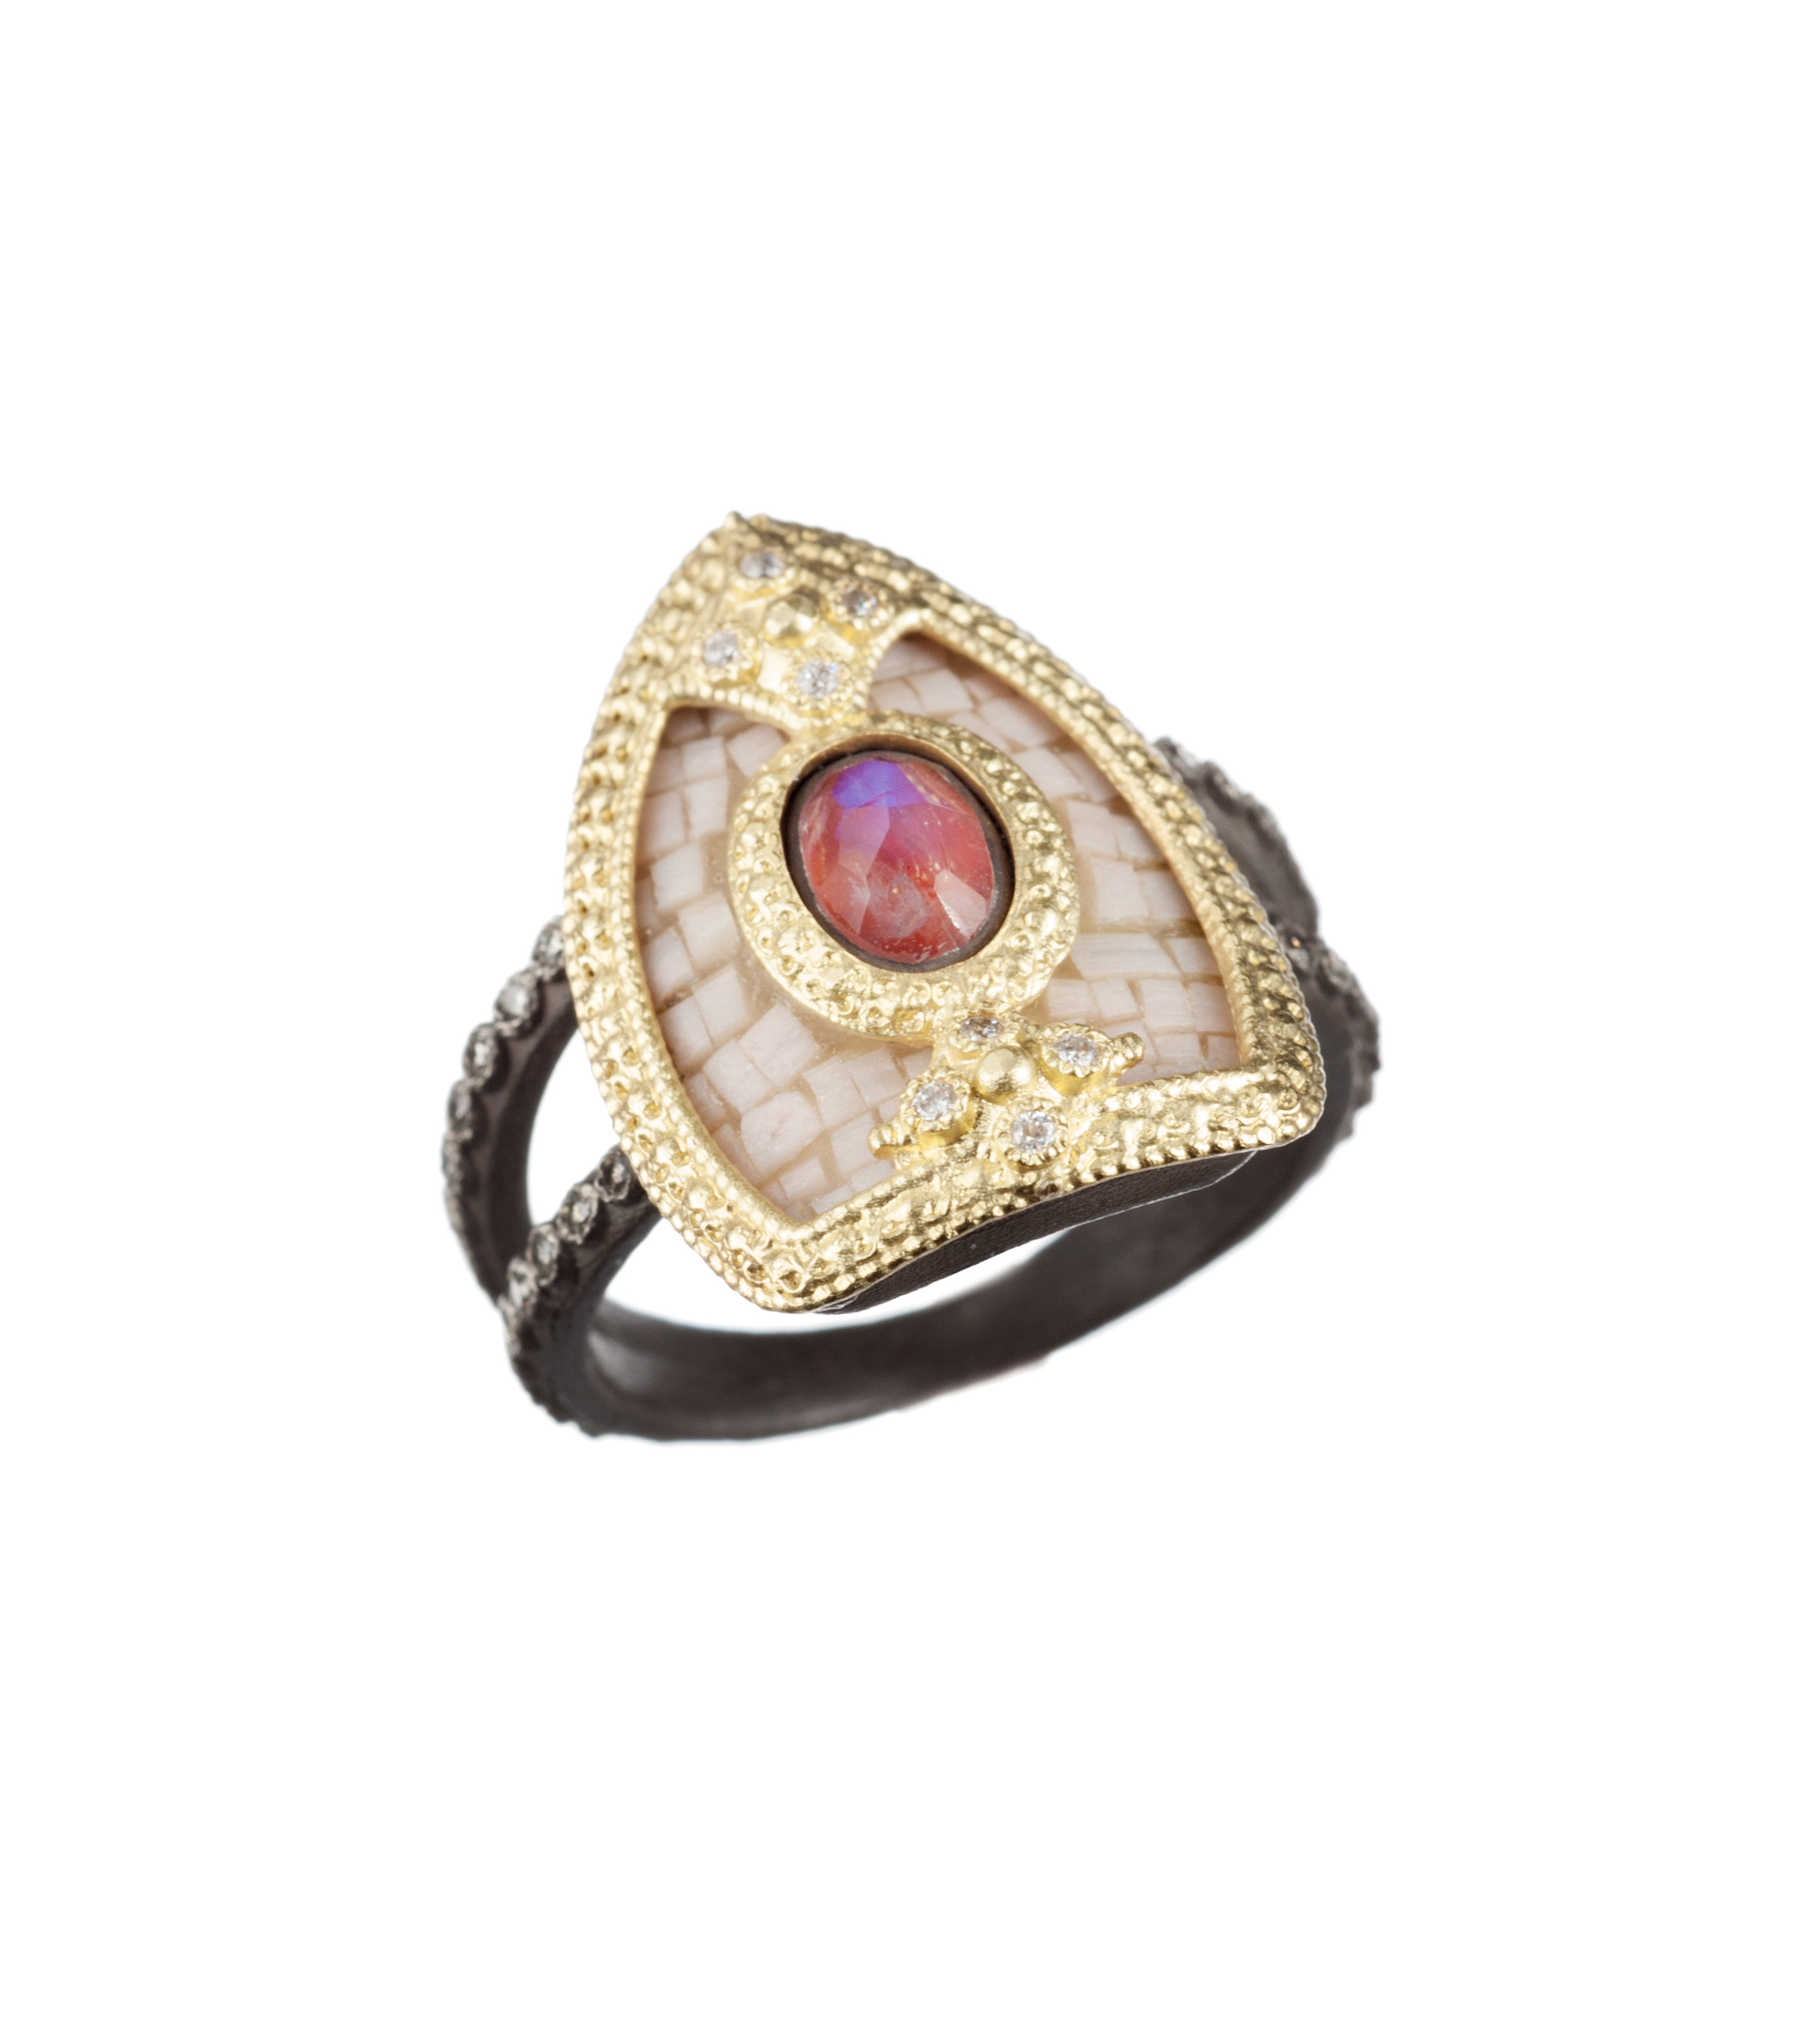 Armenta 'Old World' red jasper and moonstone ring